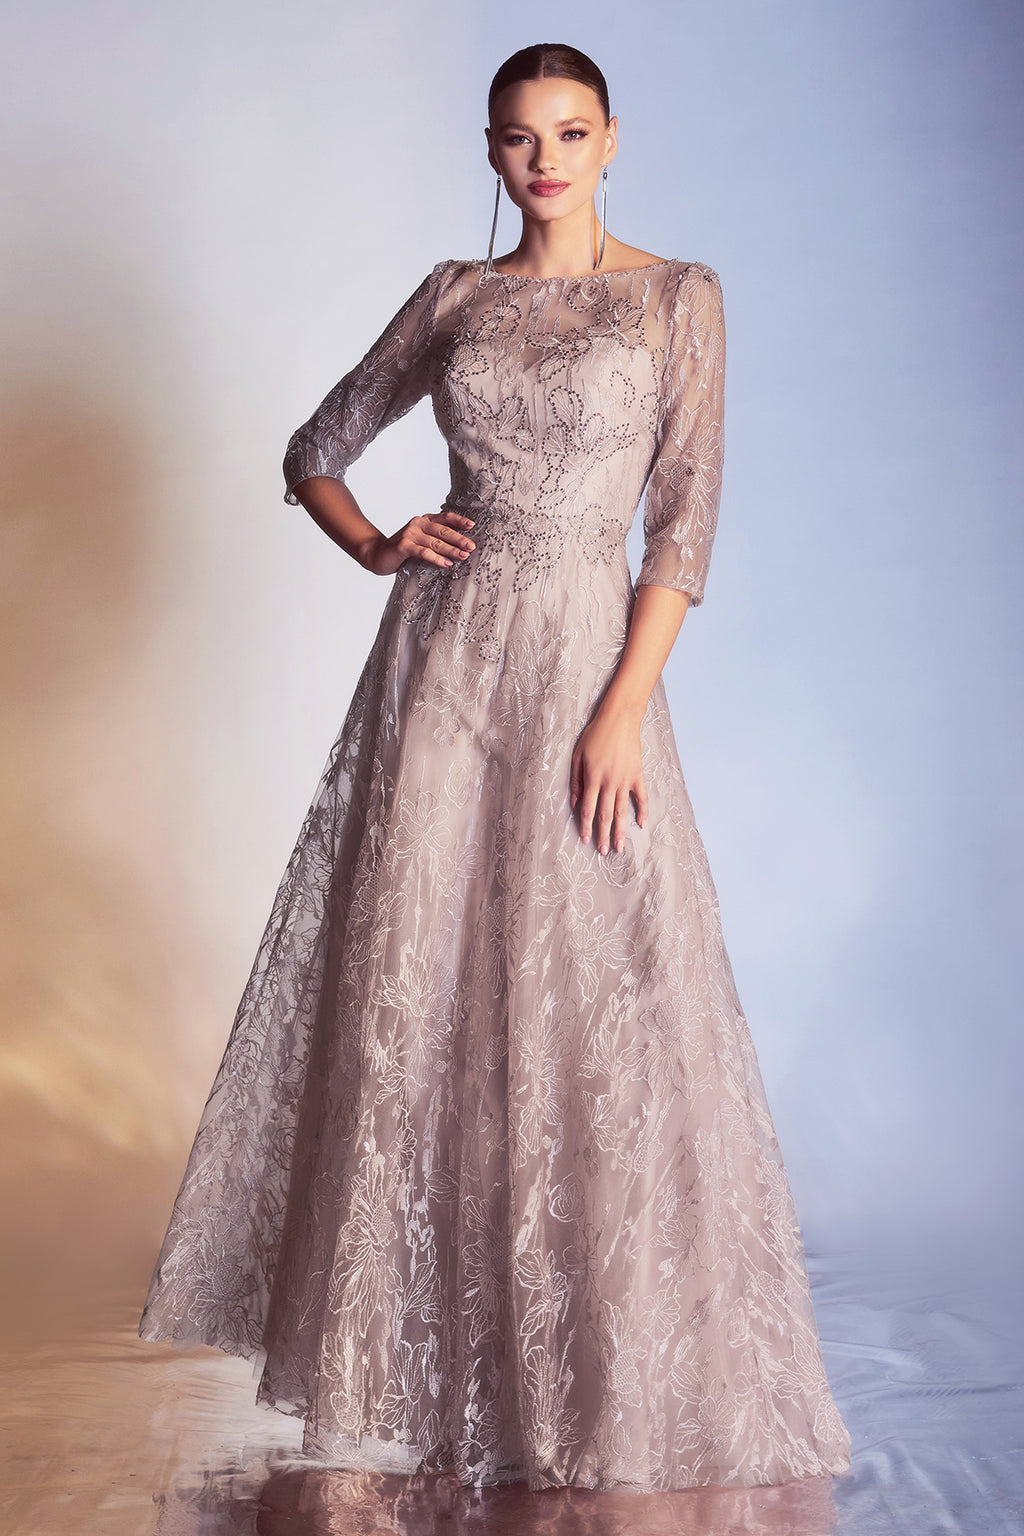 Gorgeous Long Sleeve Gown with Illusion Floral Design #CD9241